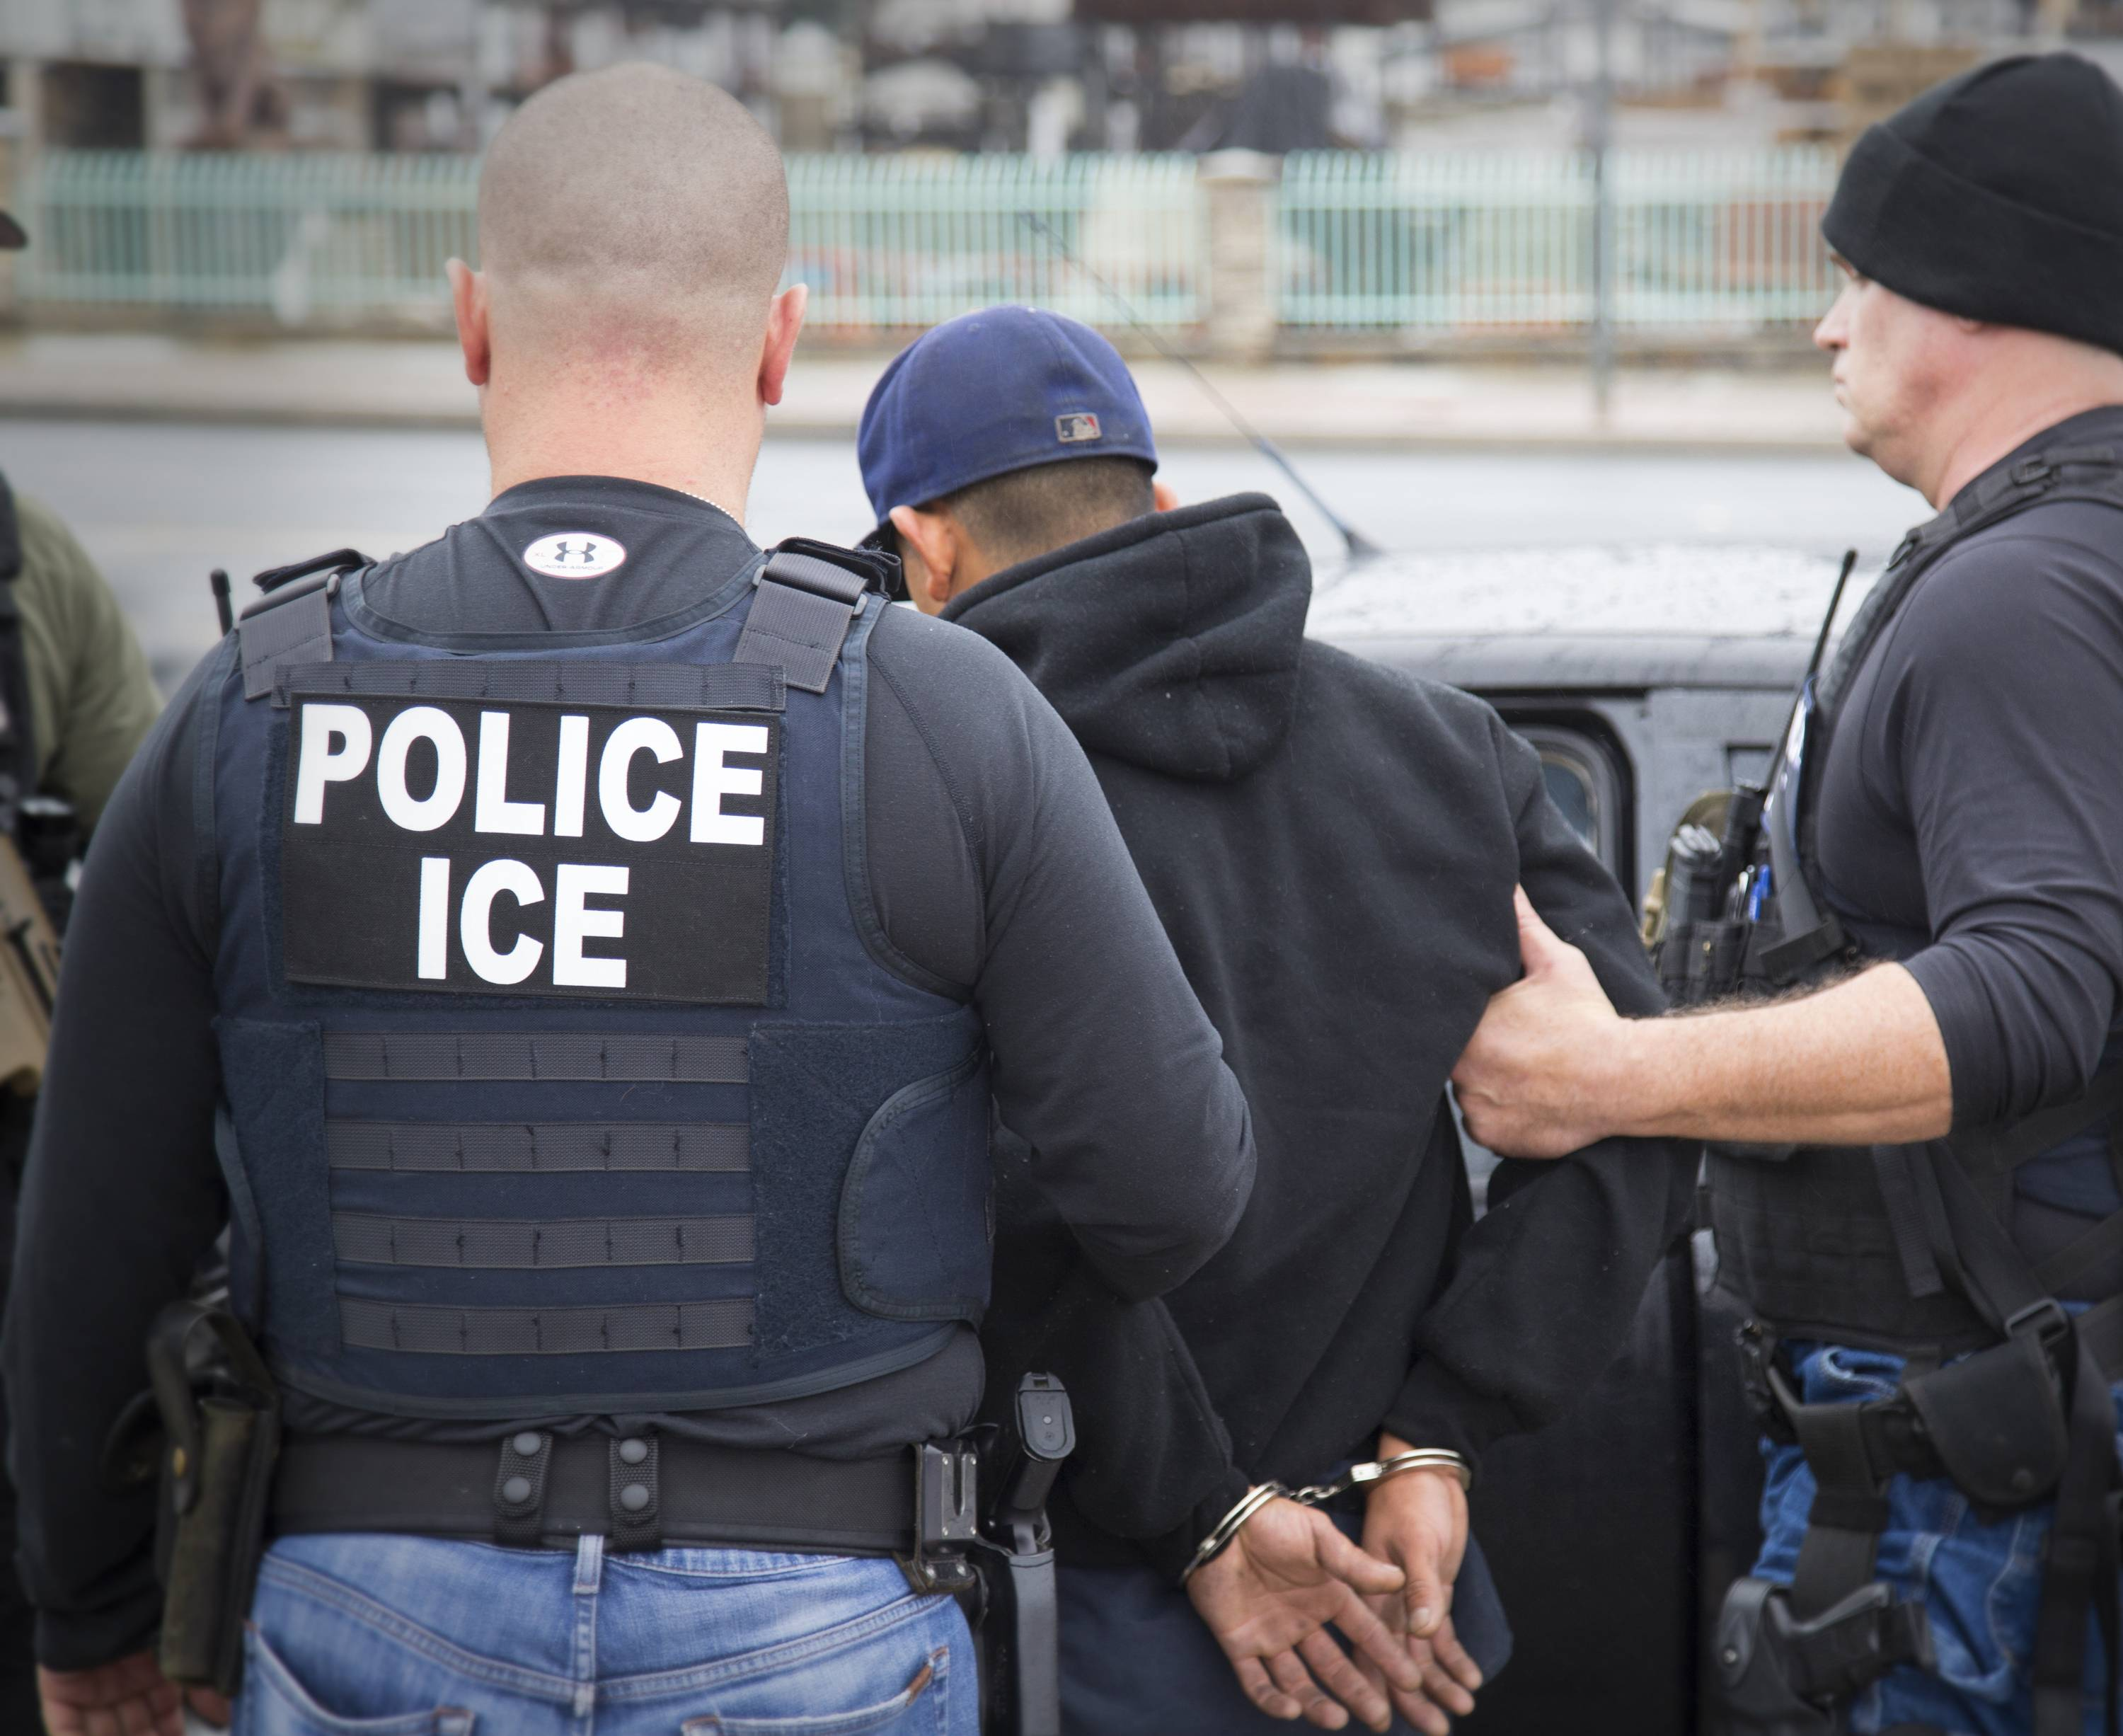 33 in suburbs arrested in federal immigration sweep